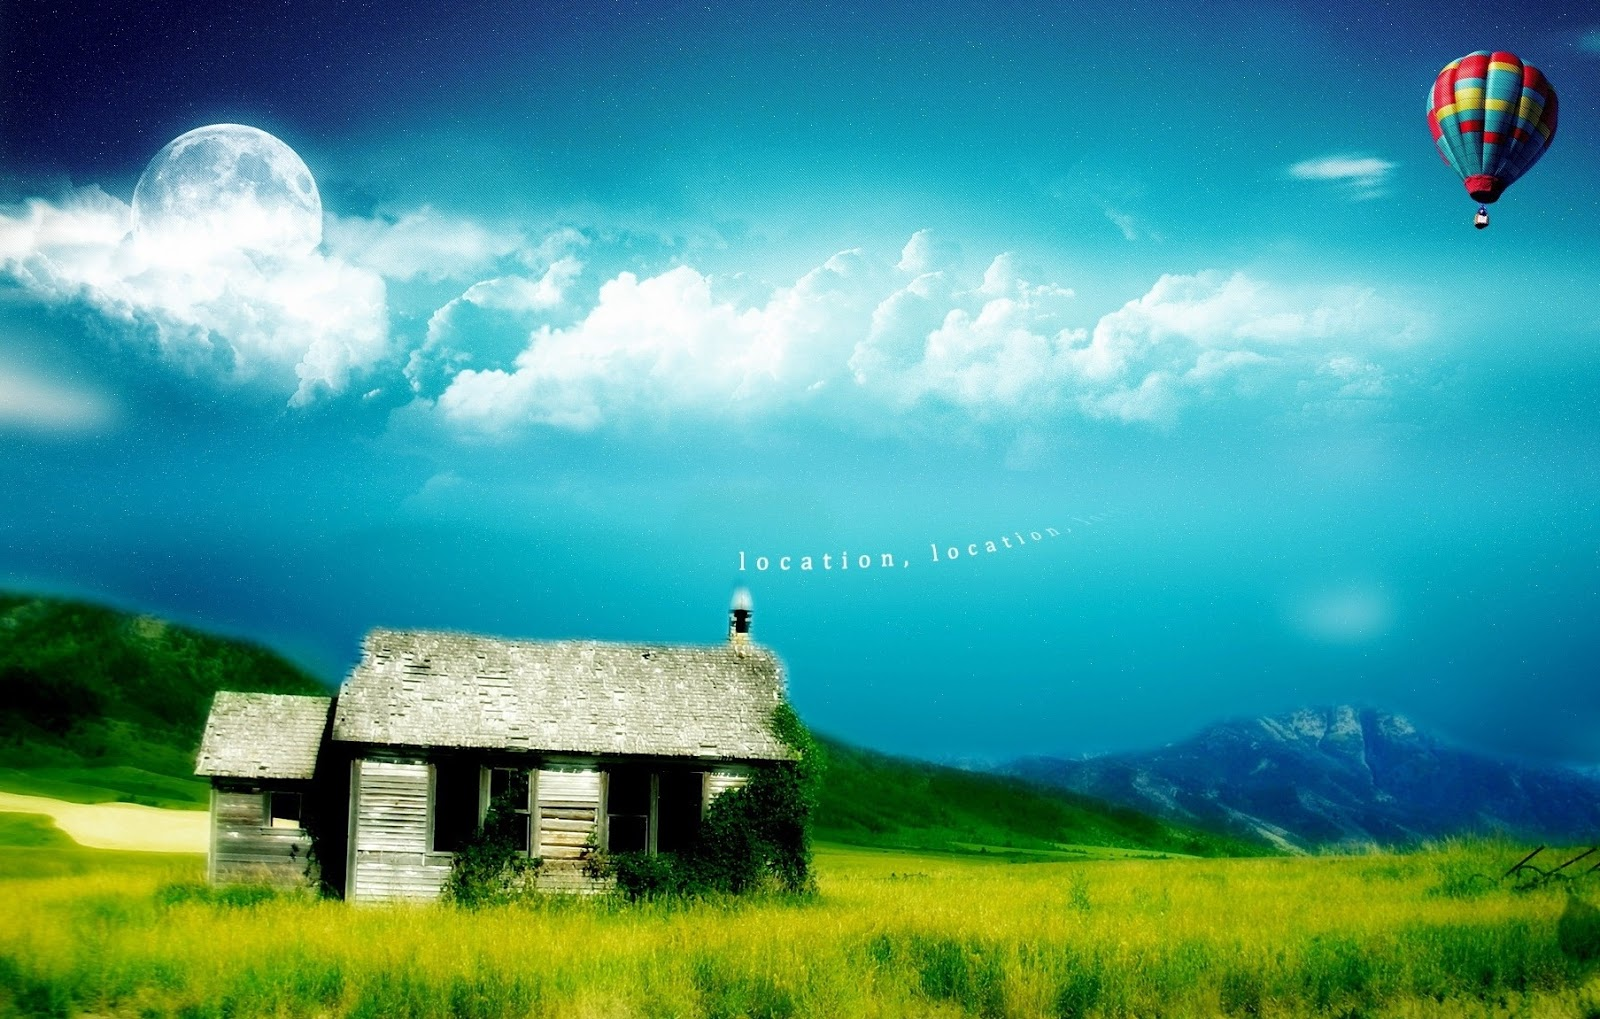 Dream houses latest hd wallpapers latest hd wallpapers for Wallpaper with houses on it